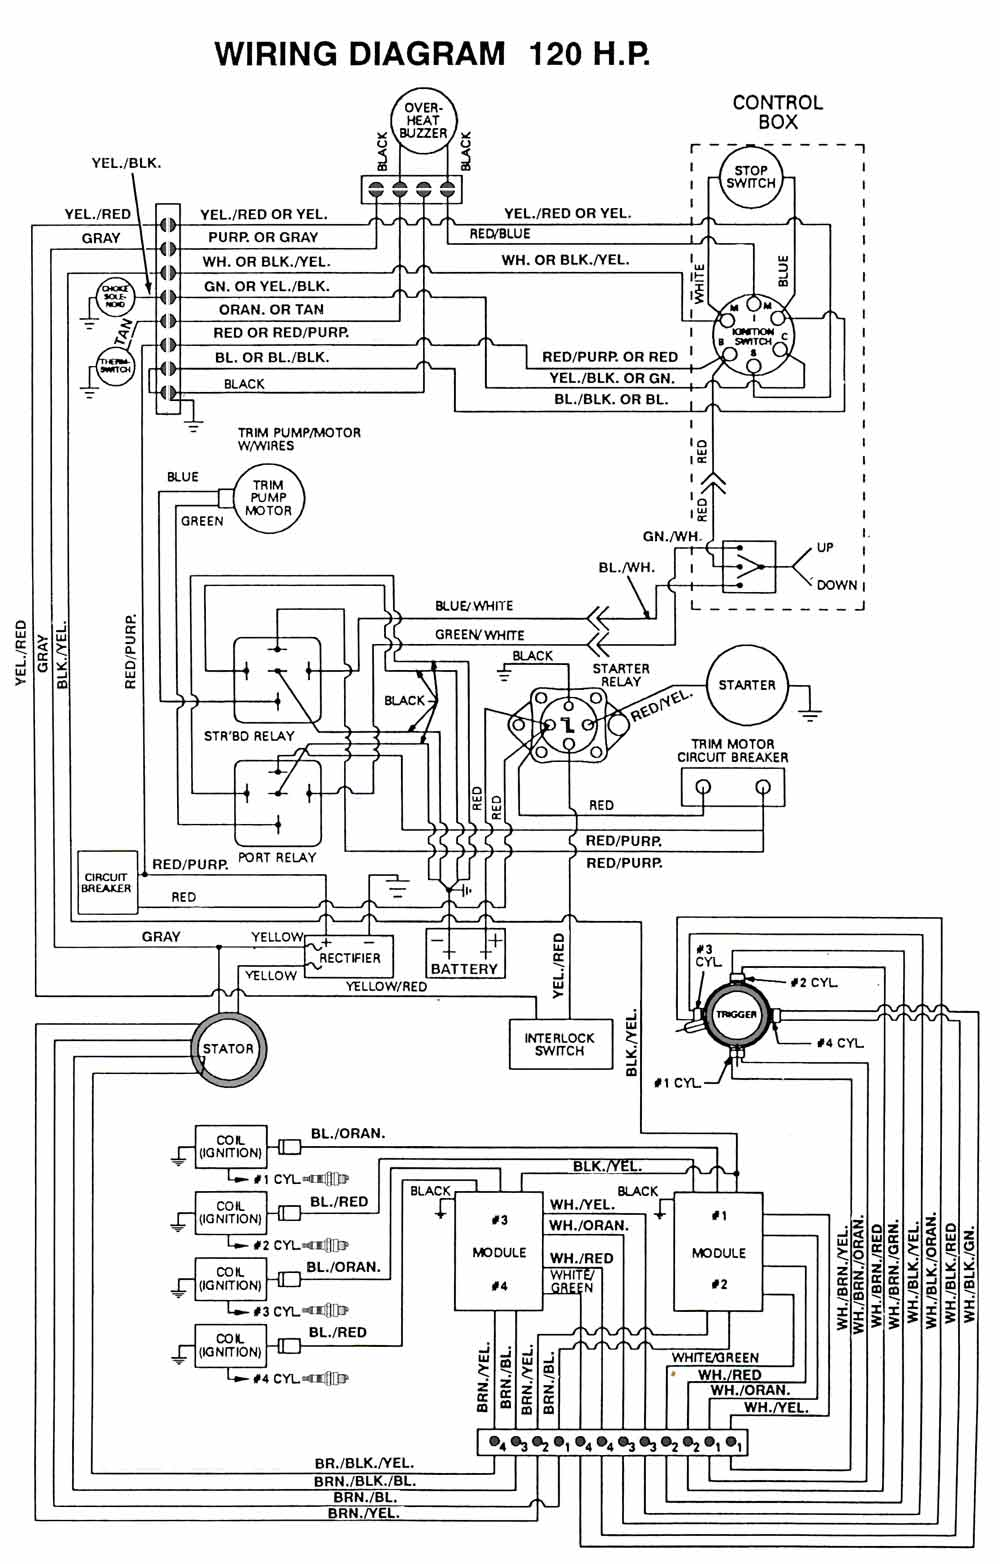 Mercruiser Boat Wiring Electronic Diagrams 75 Hp Mariner Outboard Diagram 1997 Data Schema Ranger Mercury Optimax Simple